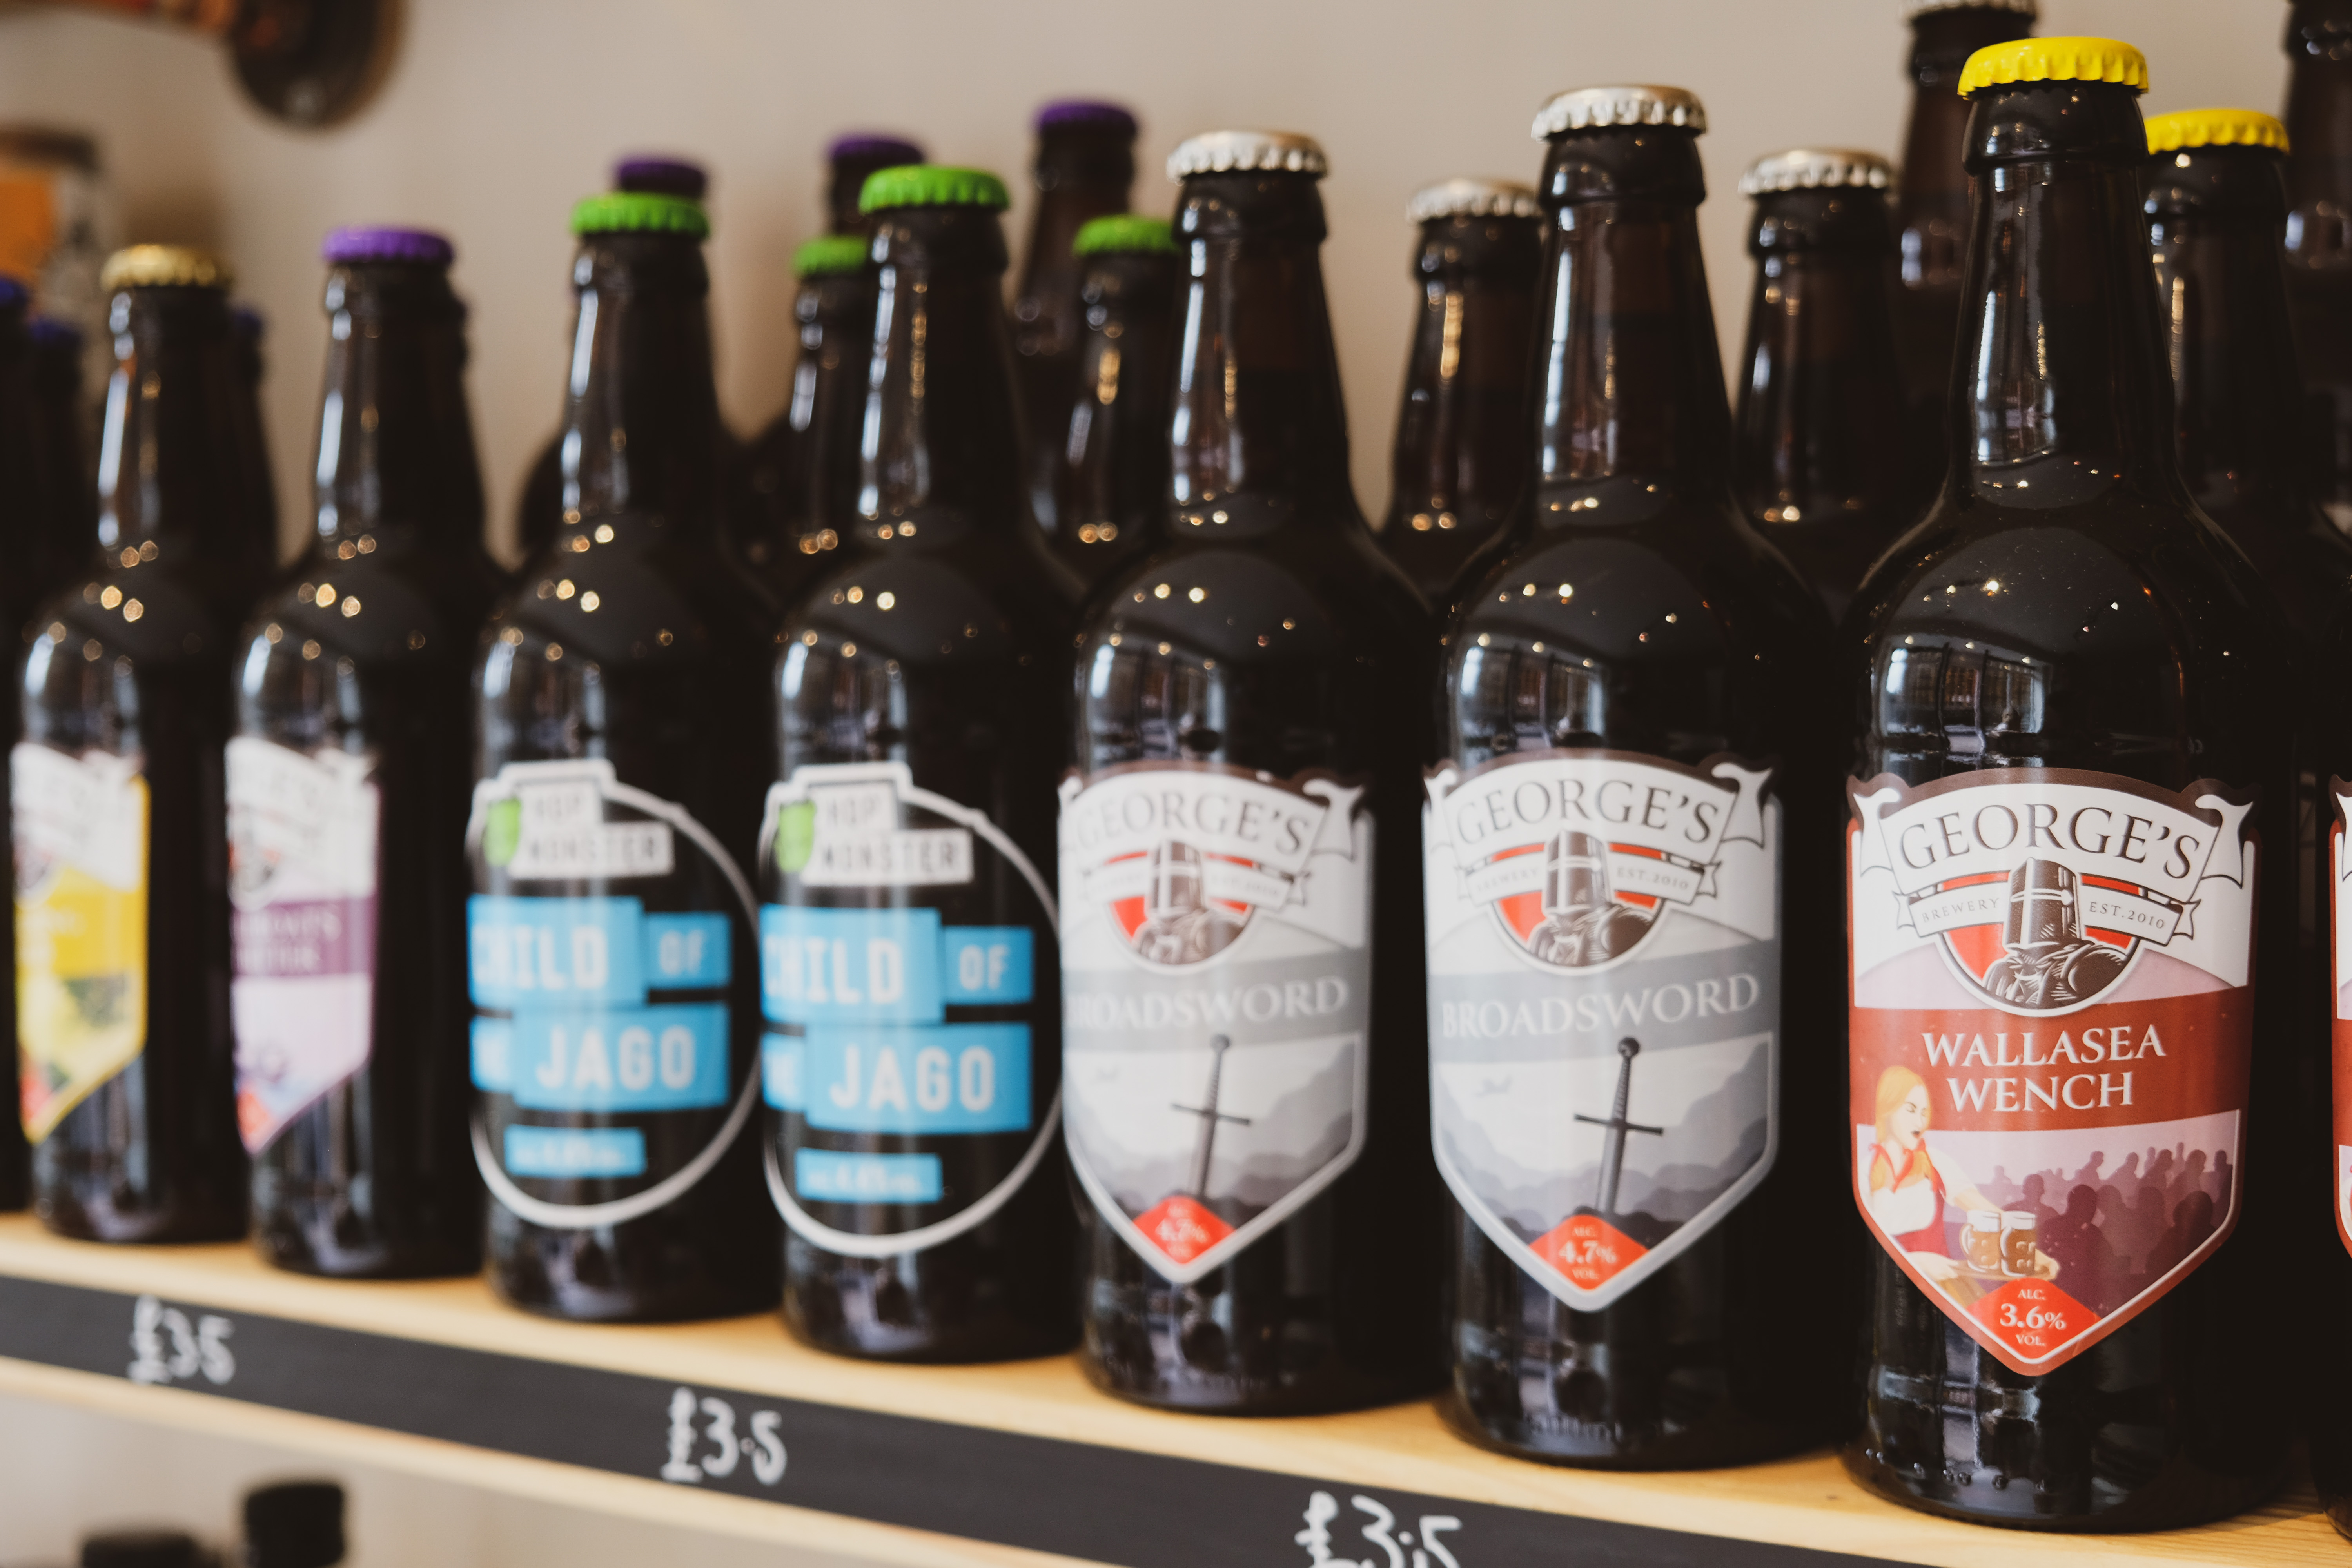 Essex Produce Co. Georges Brewery bottled beer selection in Kelvedon, Essex